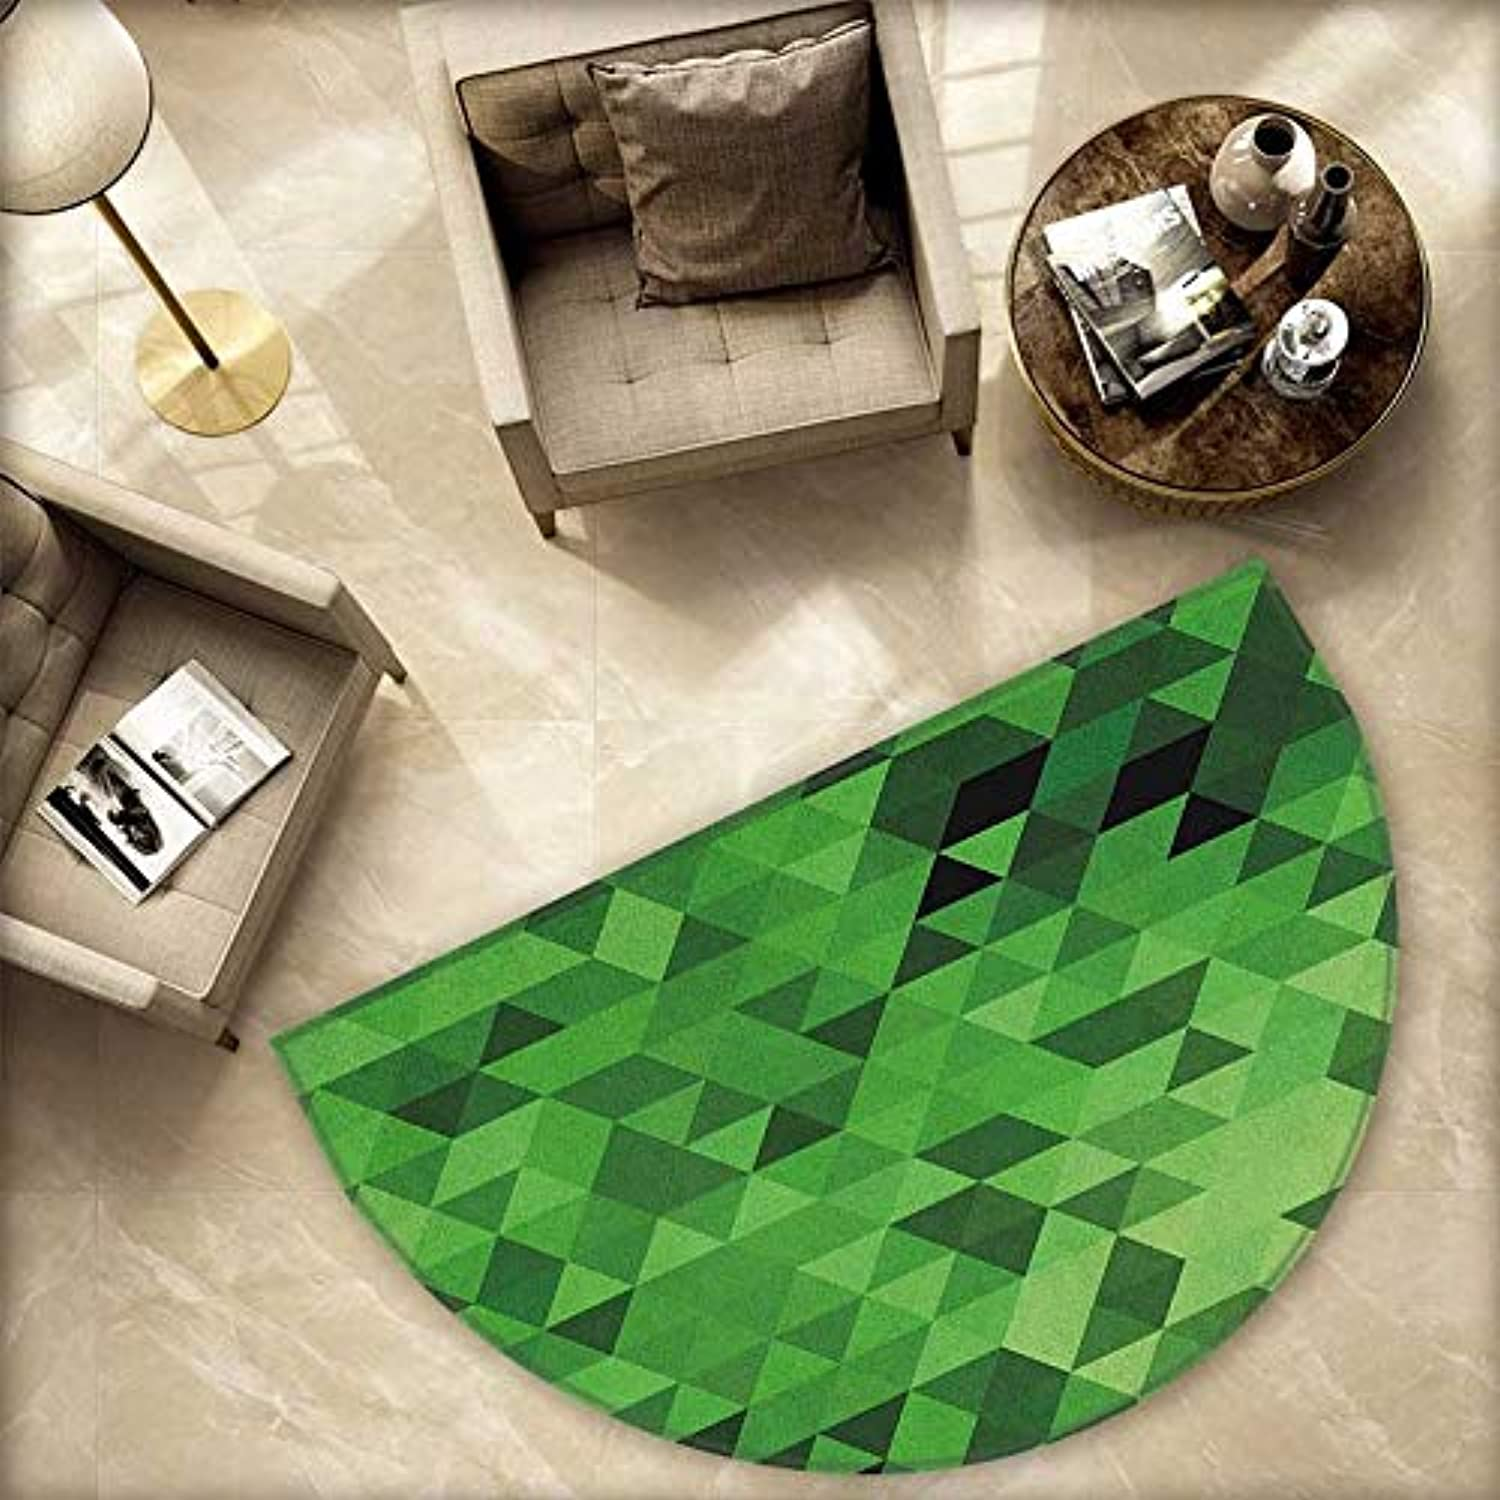 Green Semicircle Doormat Triangles in Green Shades Abstract Modern Mosaic Pattern with Fractal Look Halfmoon doormats H 78.7  xD 118.1  Dark Green Pale Green